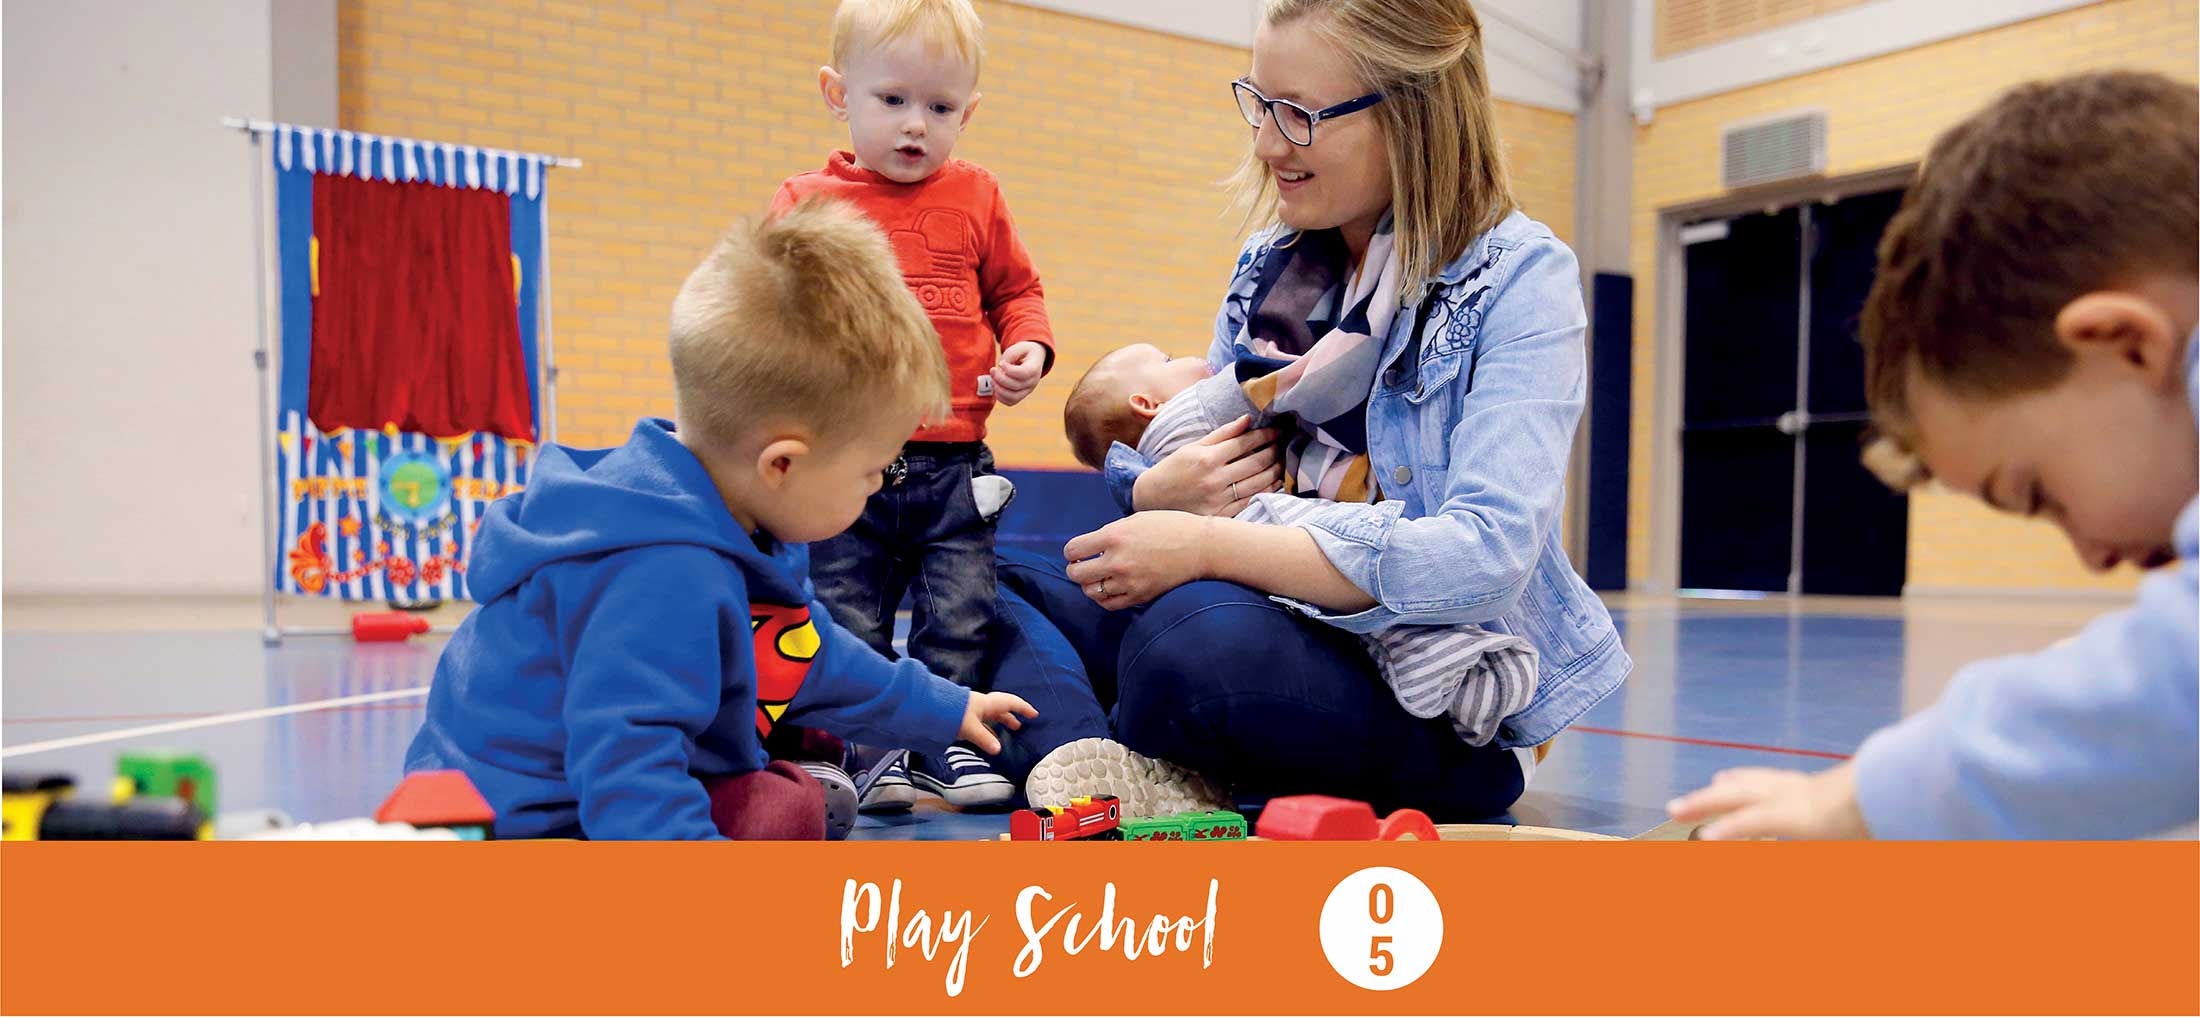 charlton christian college play school